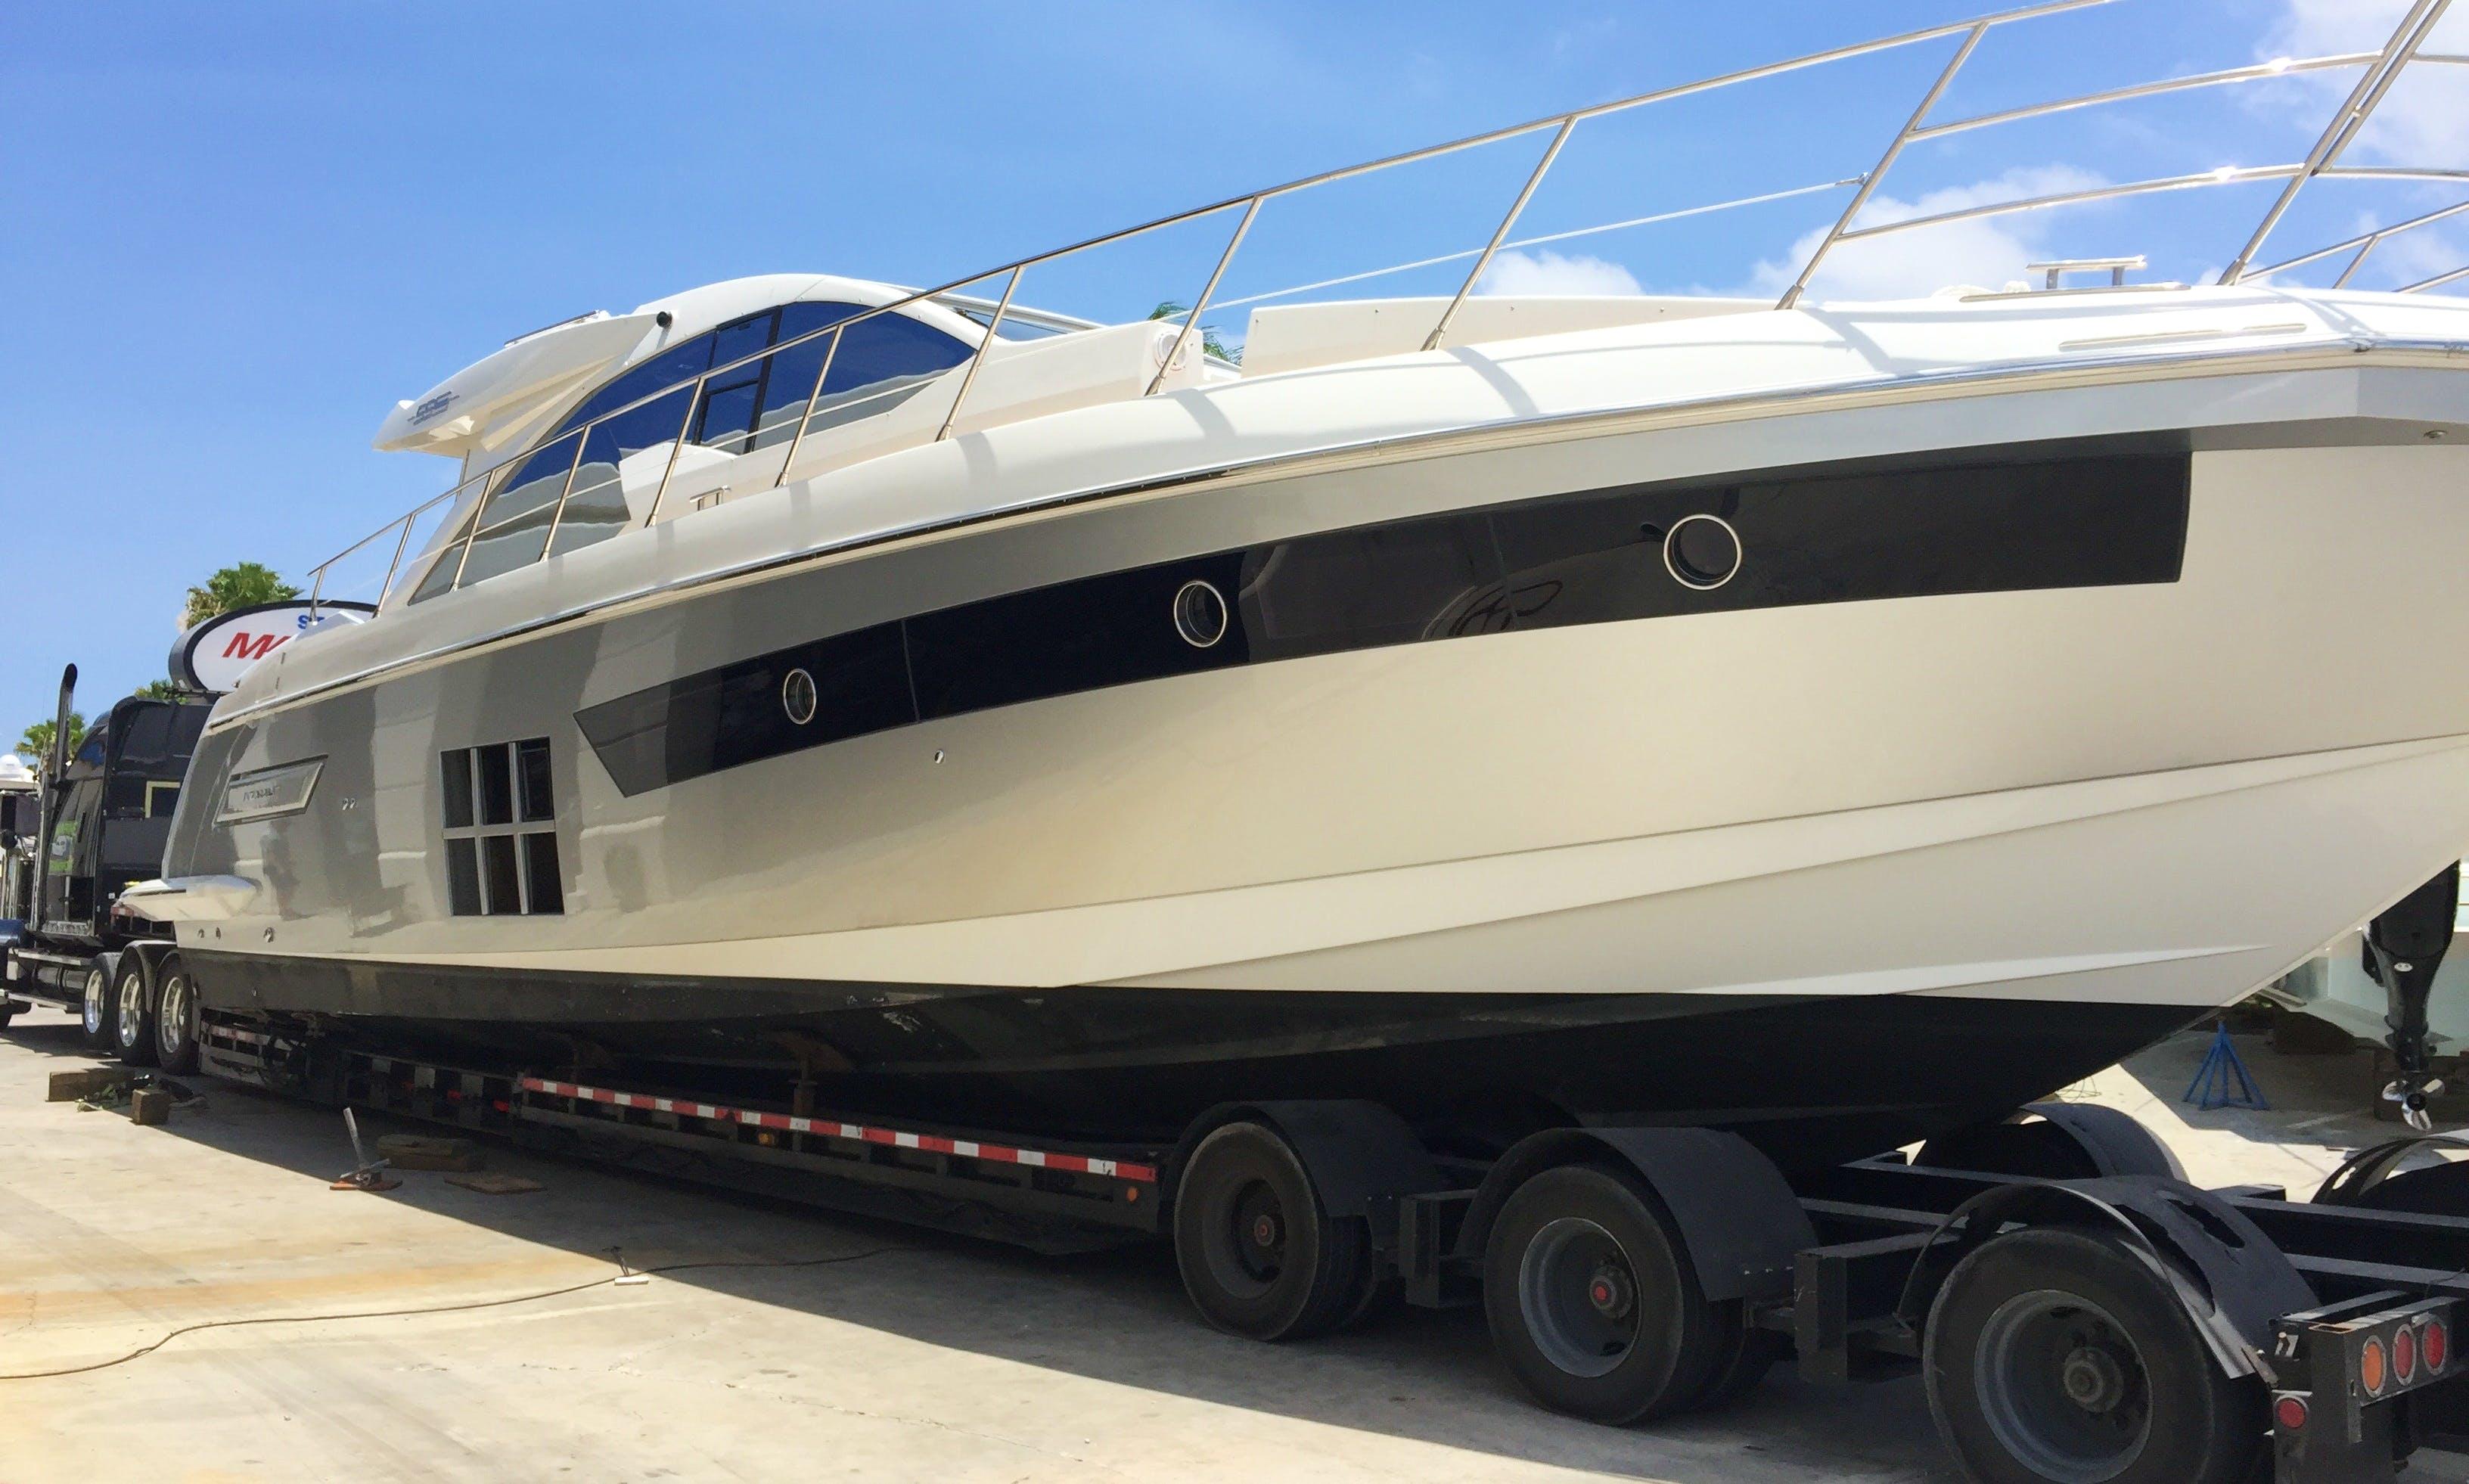 Cruising with Azimut 55s Motor Yacht on Lake of Ozarks